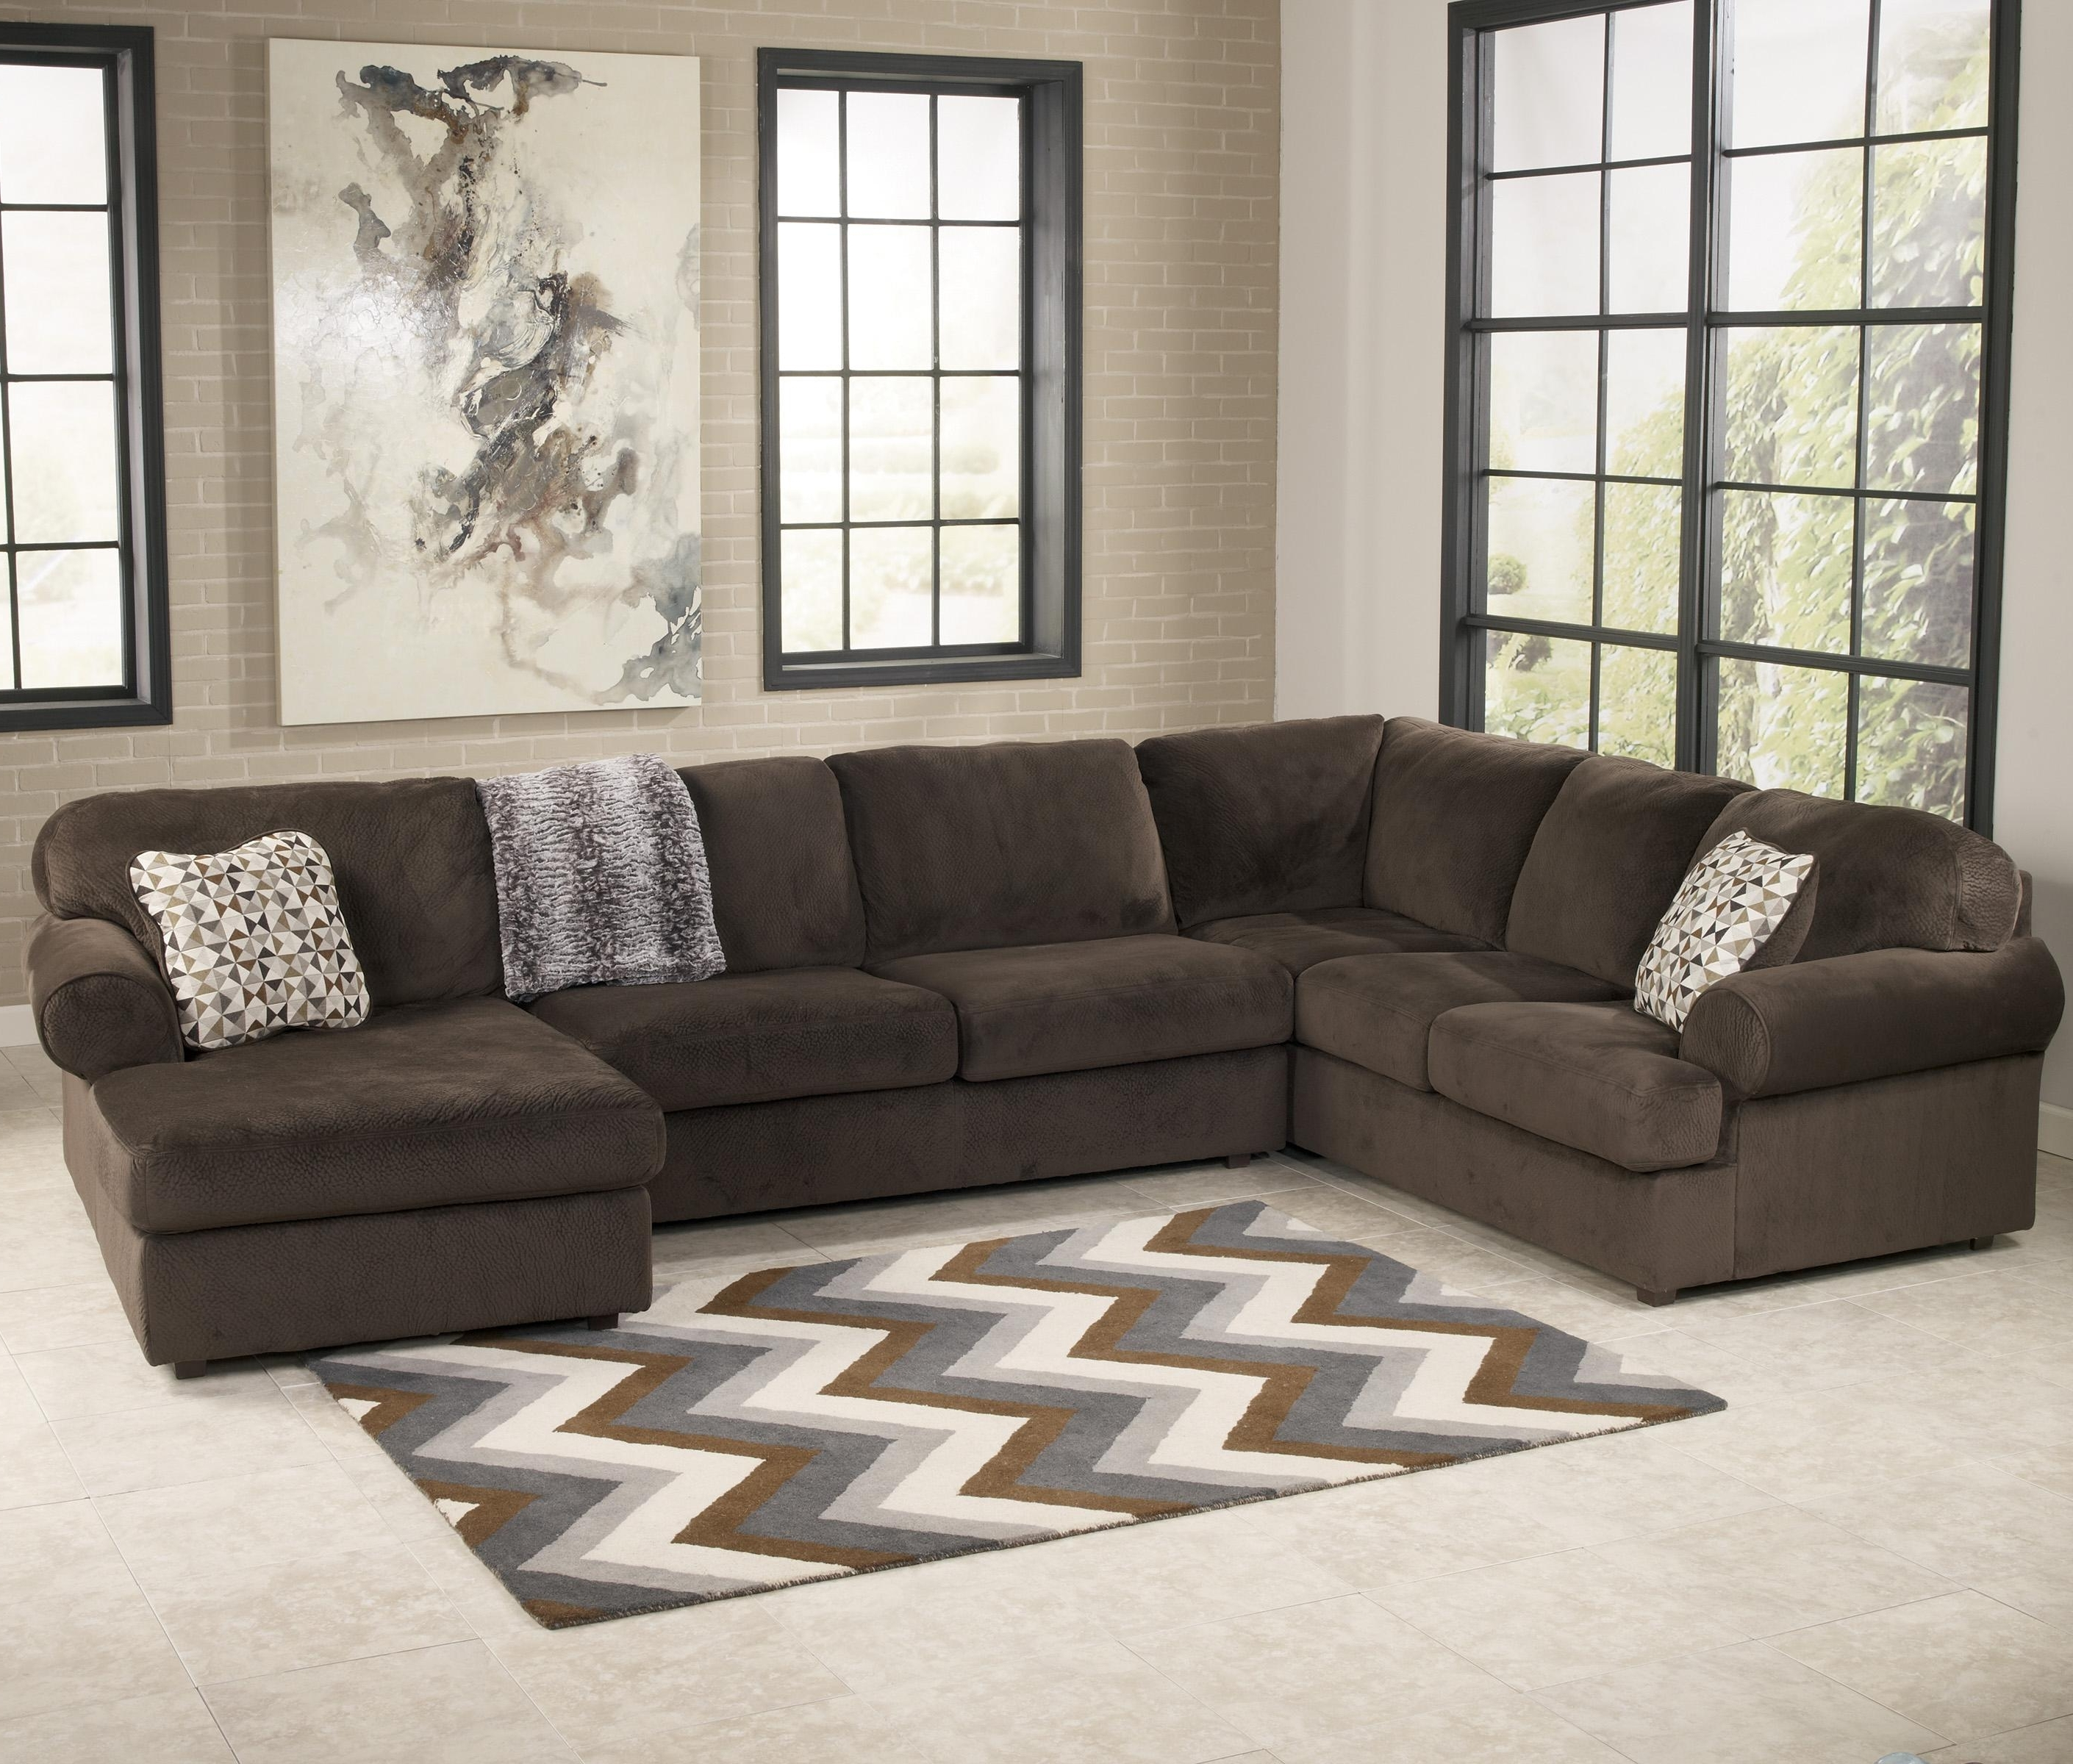 2017 Signature Designashley Jessa Place – Chocolate Casual In Ashley Chaise Sofas (View 12 of 15)